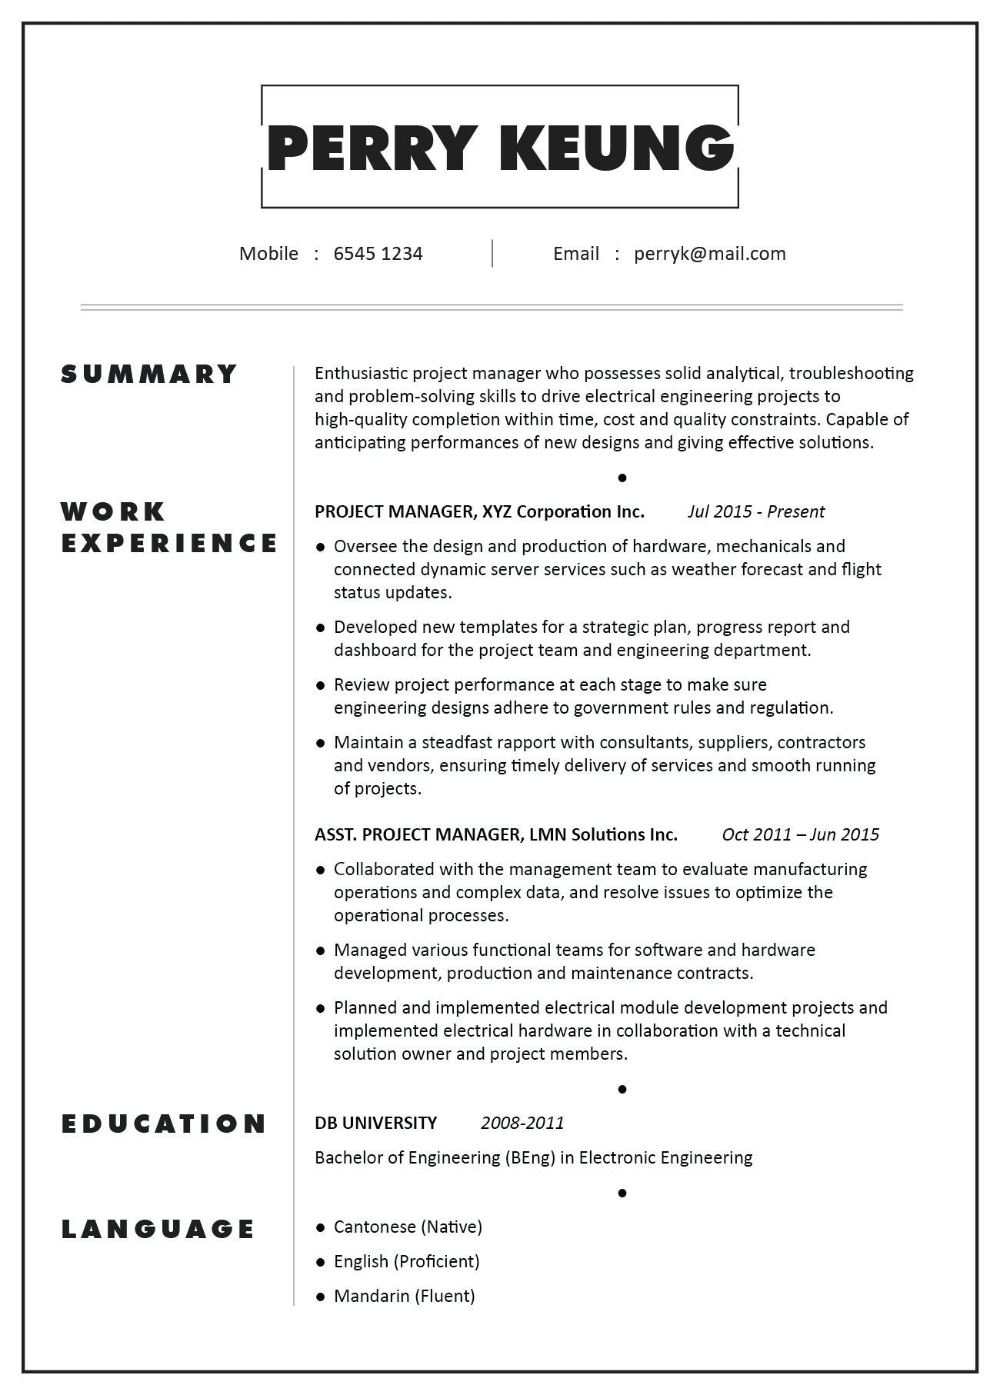 Professional Blue CV Template Resume Template Hong Kong